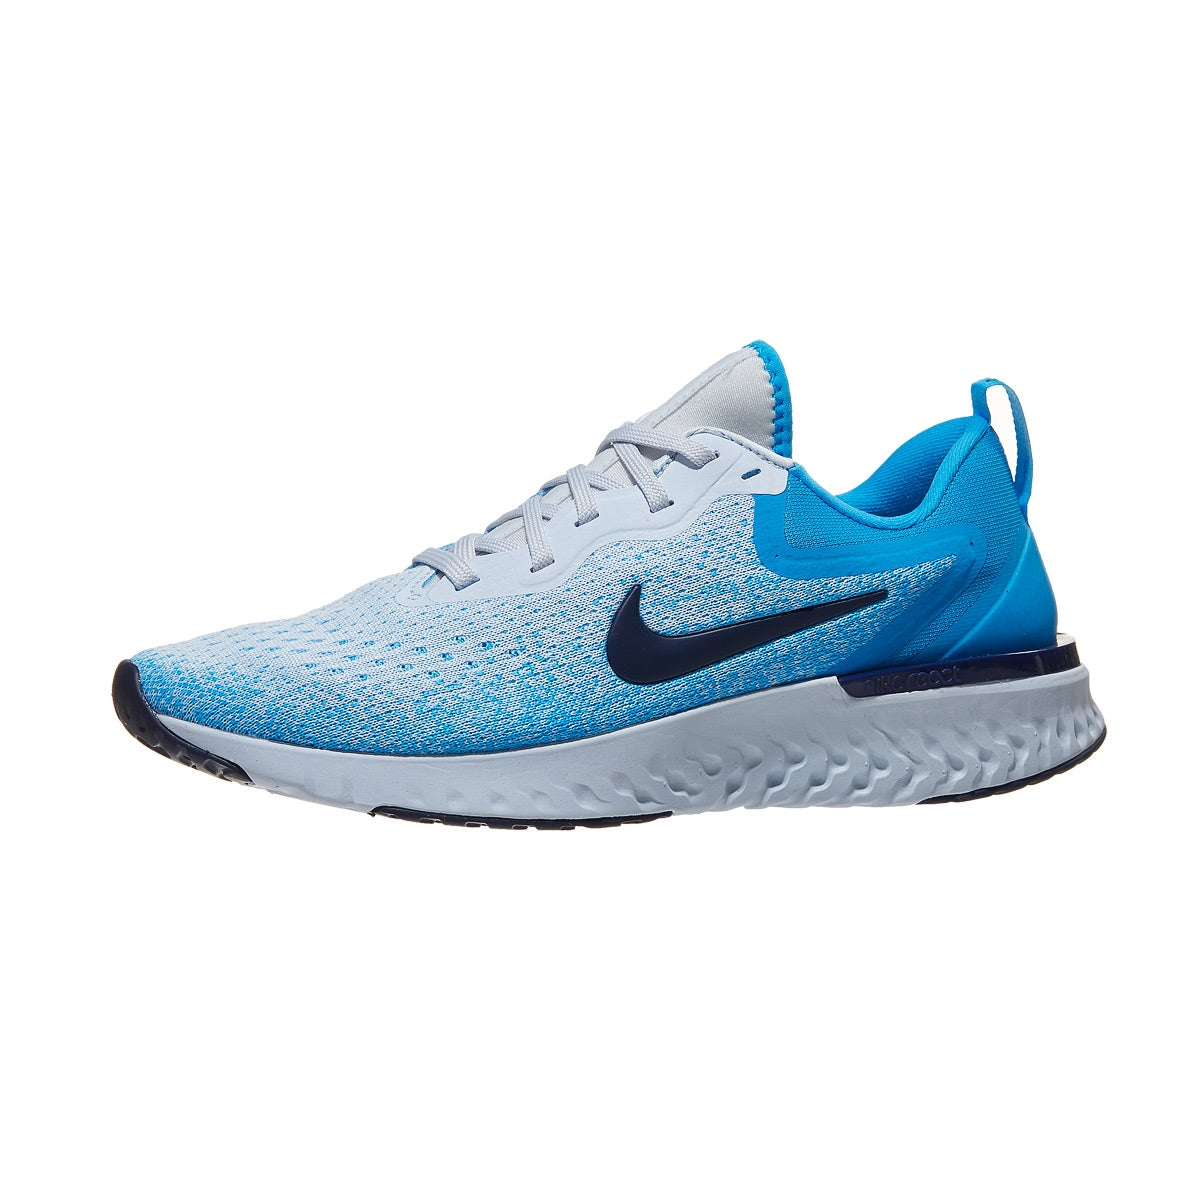 5b7bc0aae70a Nike Odyssey React Women s Shoes Football Grey Blue 360° View ...